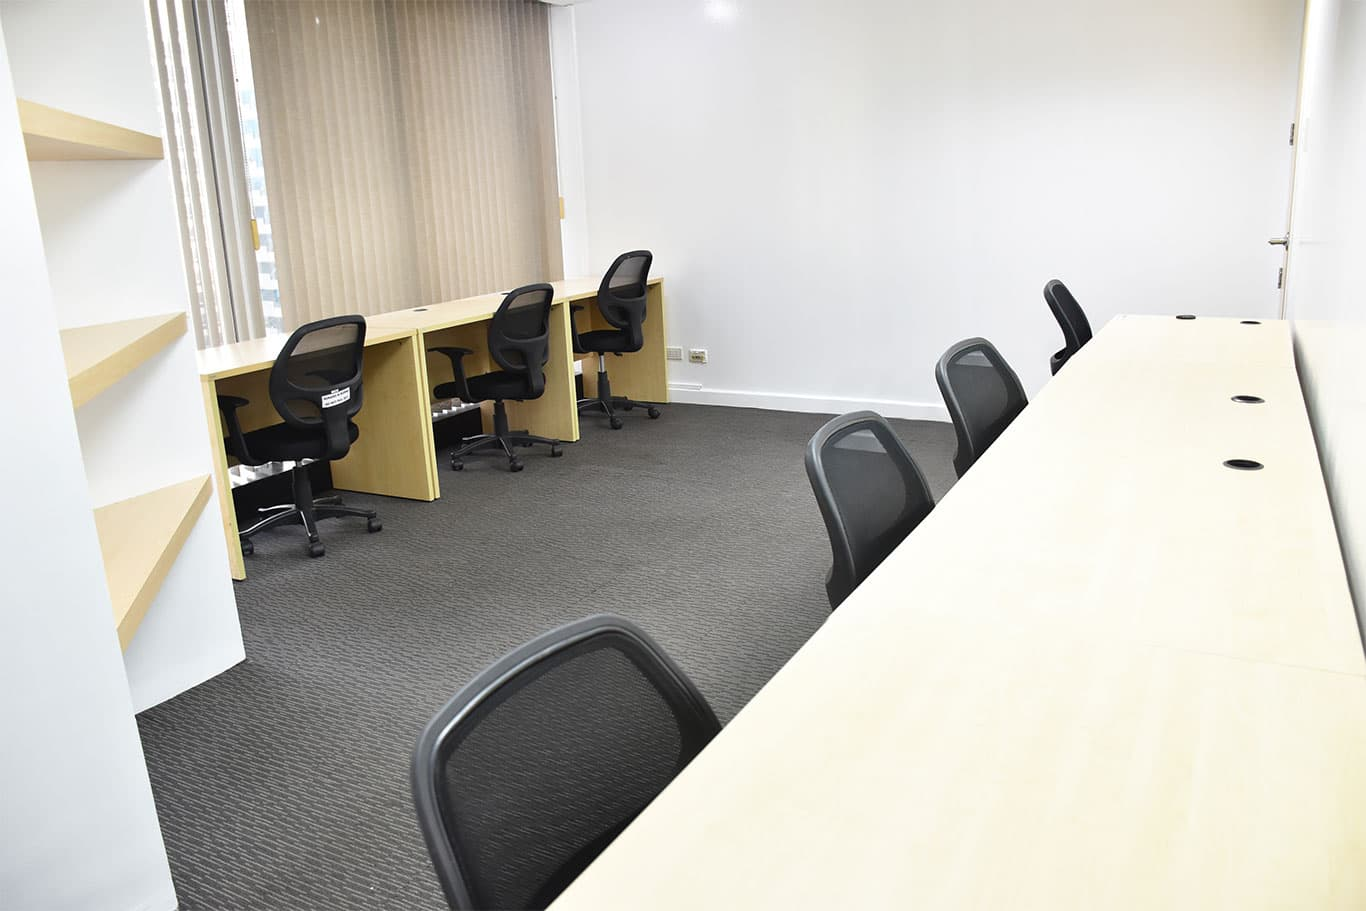 KMC Private Office Space for rent in Rufino Pacific Tower, Makati City, Manila, Philippines Image 3 - EpicSpace